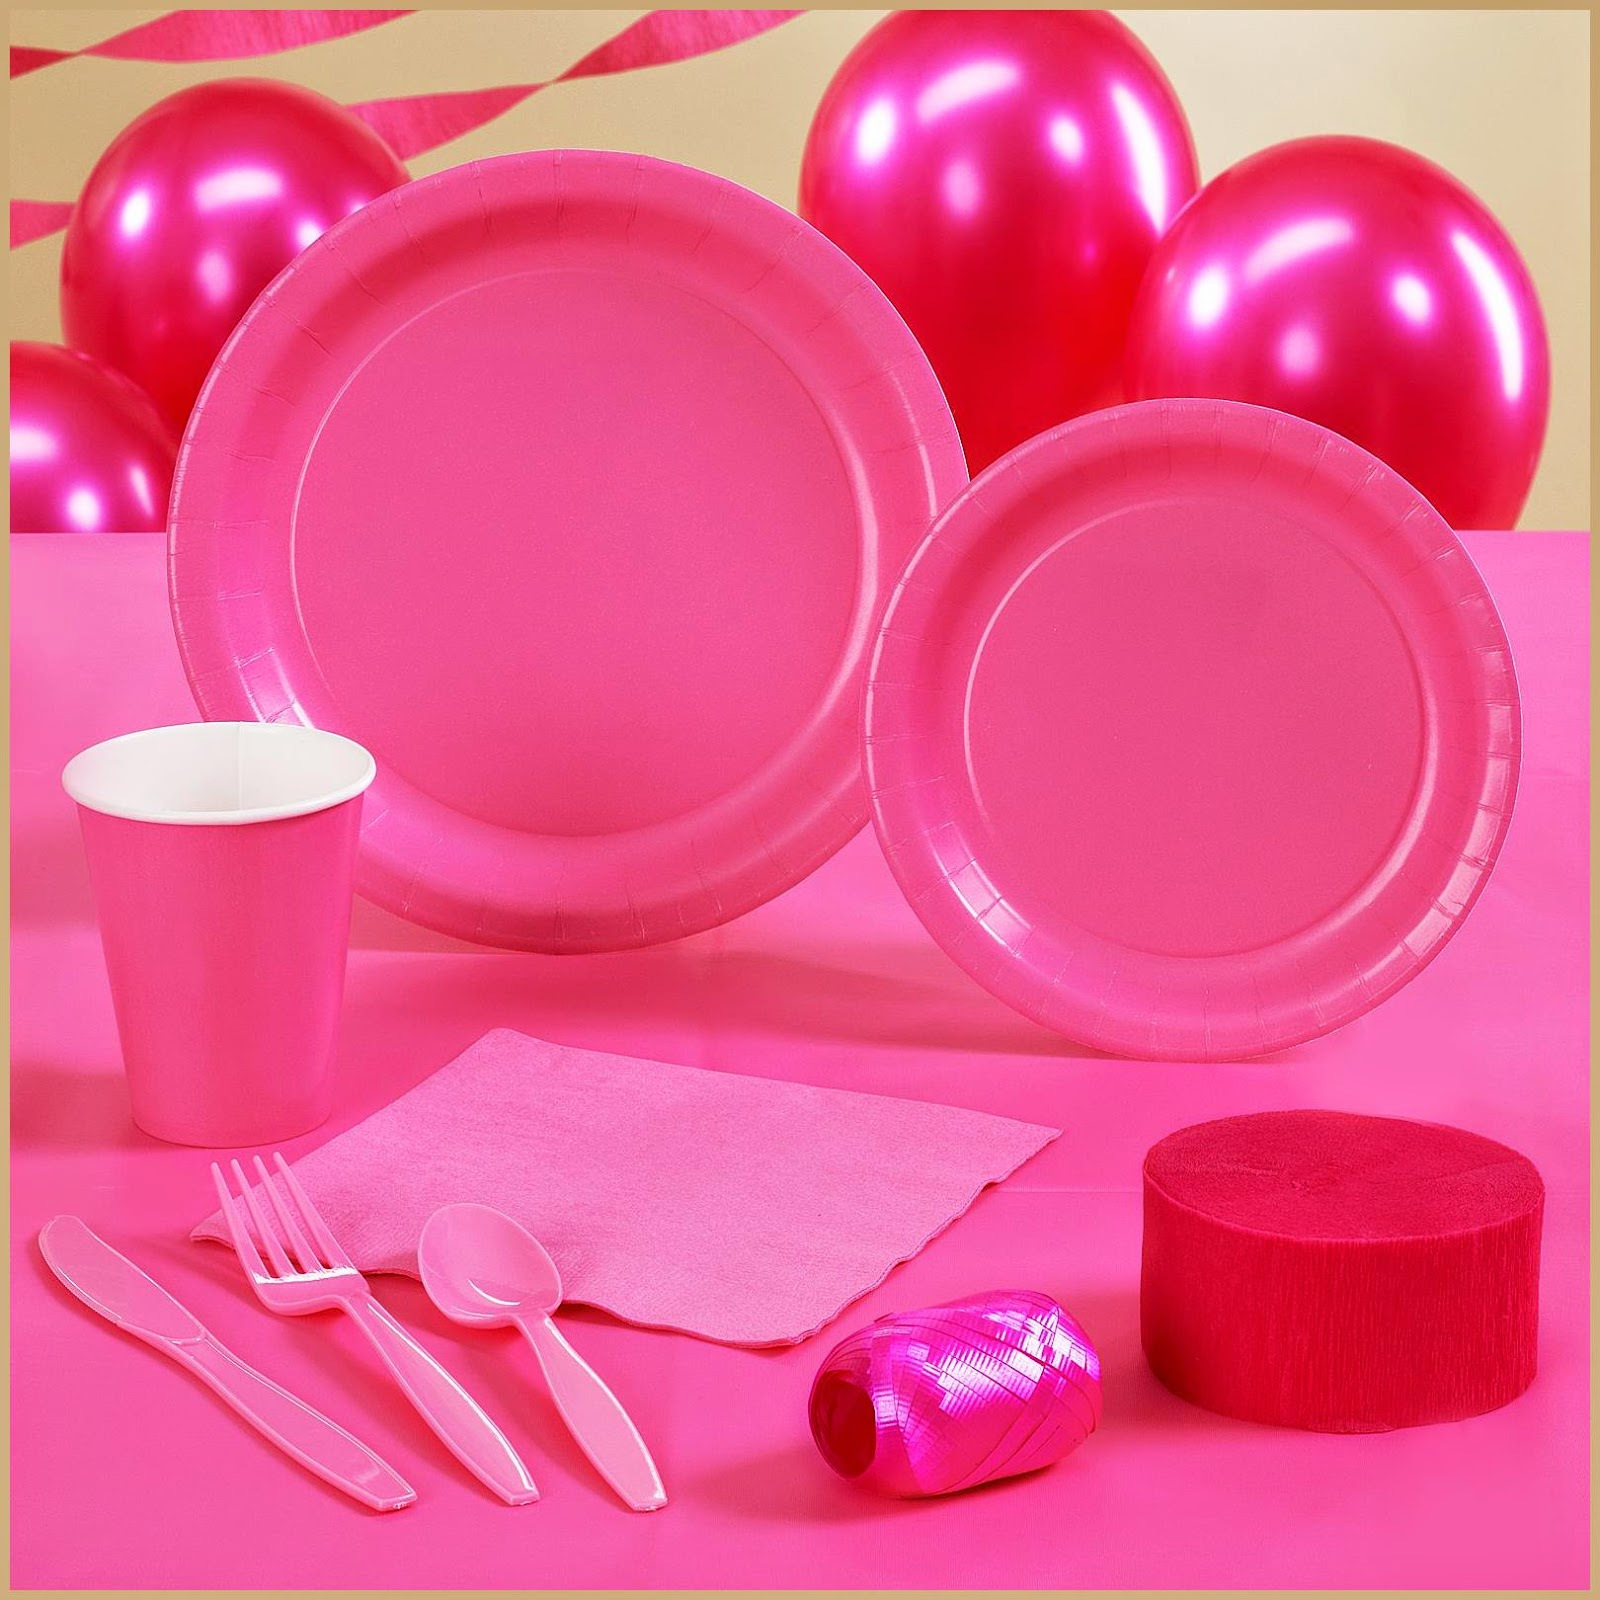 http://www.partybell.com/p-32178-candy-pink-hot-pink-standard-party-pack.aspx?utm_source=Social&utm_medium=Blog&utm_campaign=Candy_Pink_Party_Pack